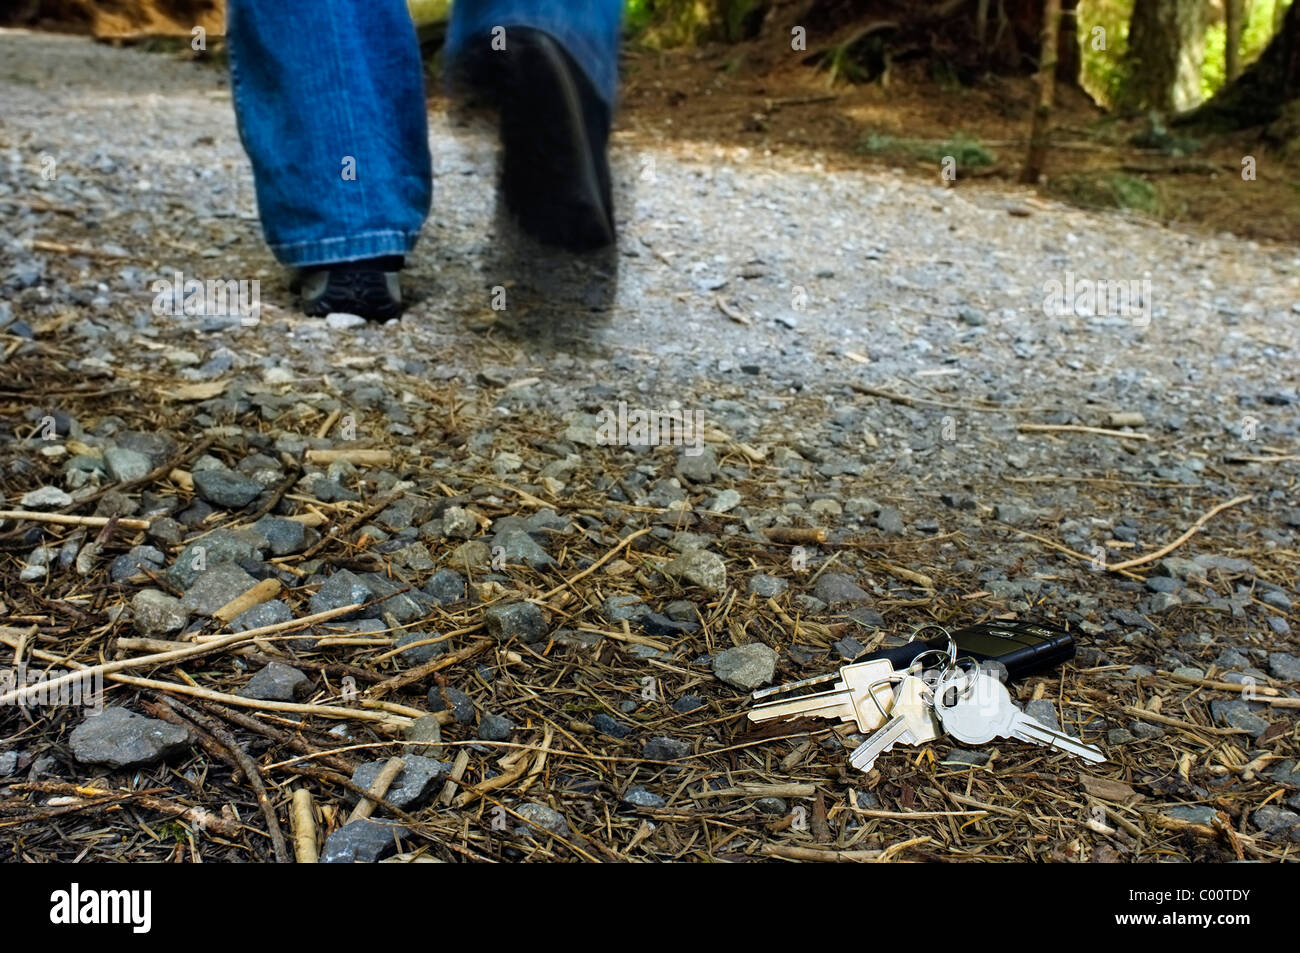 A set of house and car keys lay on the forest trail as a person walks away from them. - Stock Image